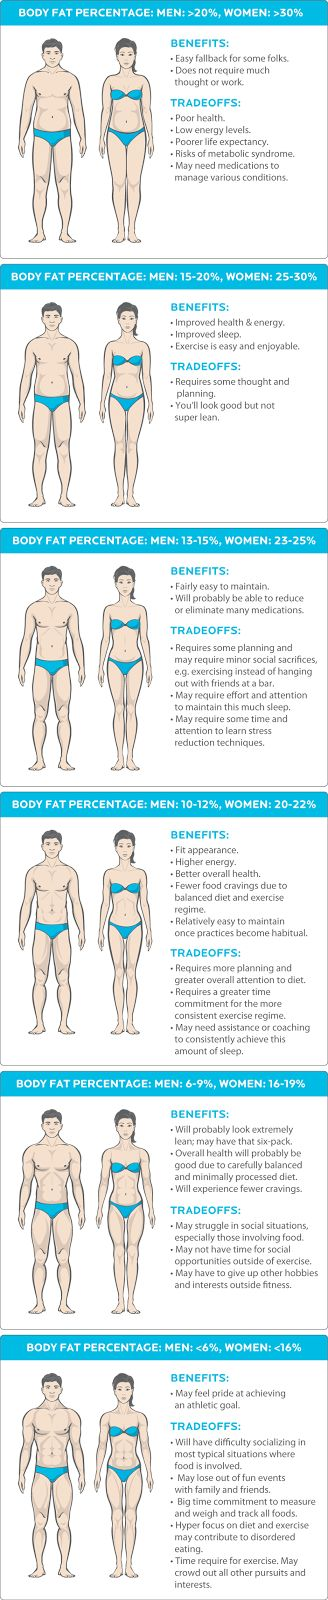 Britney Munday: What body fat percentage do you want to be?